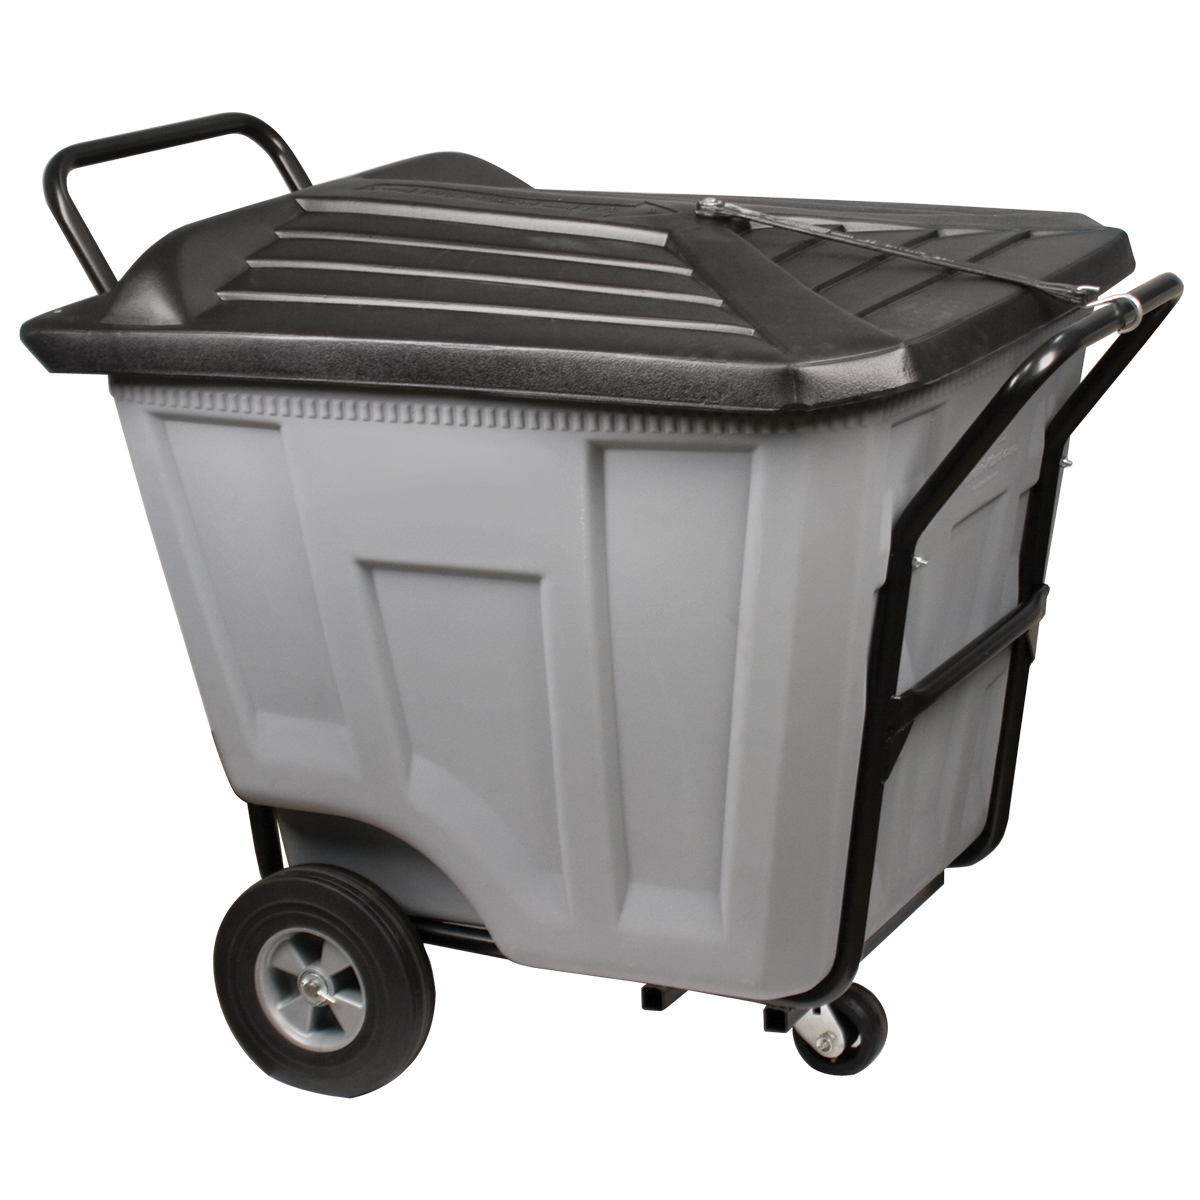 Akro-Cart w/ Lid Heavy-Duty 90 Gal, 30-1/2 x 47 x 39-1/2, Gray (76591GREY).  This item sold in carton quantities of 1.